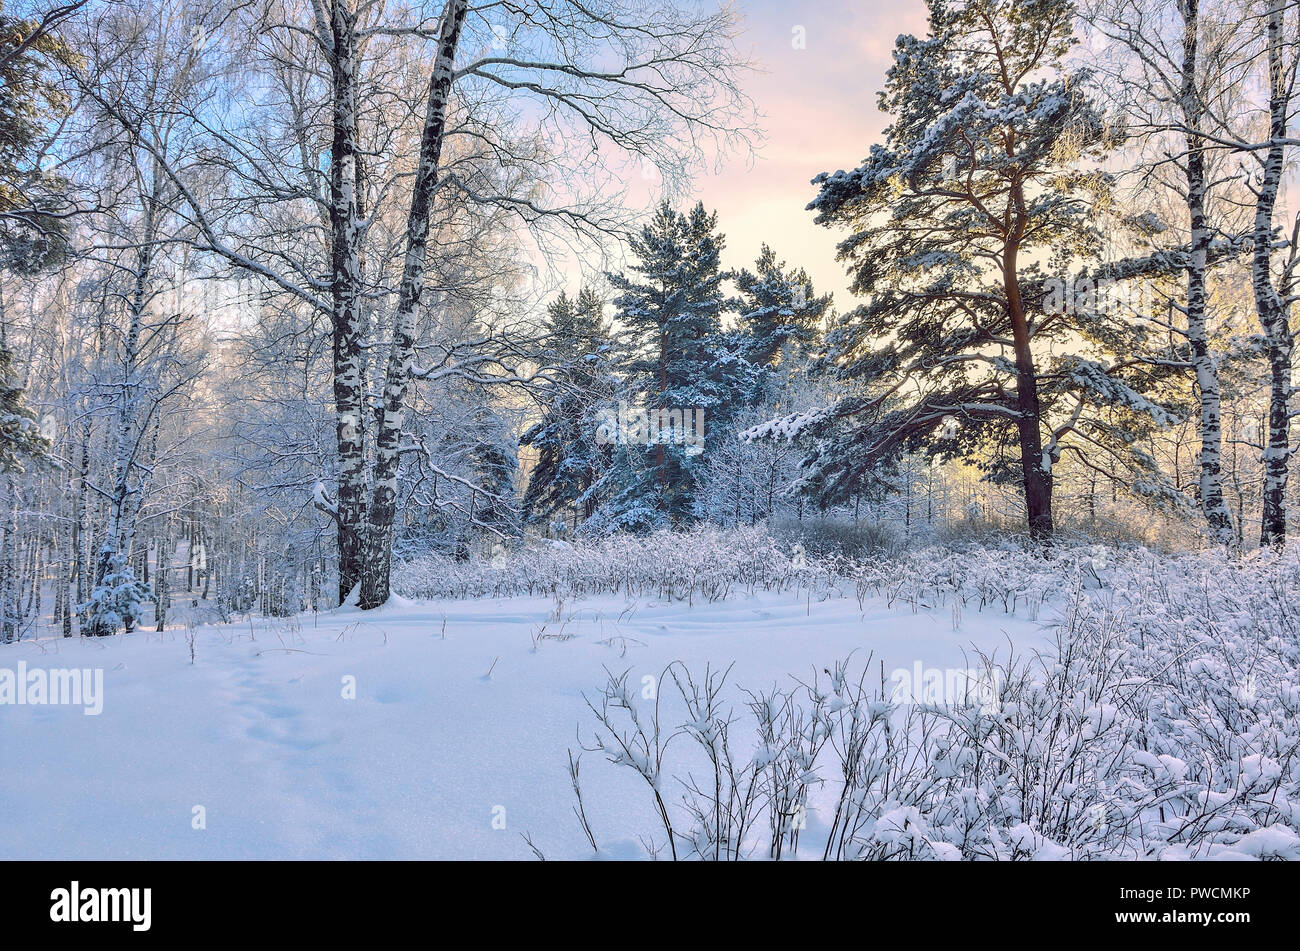 Sunrise in the winter wood. Gentle pink sunlight among white trunks of birch trees, snowy pines and bushes - fairy tale of winter forest - Stock Image